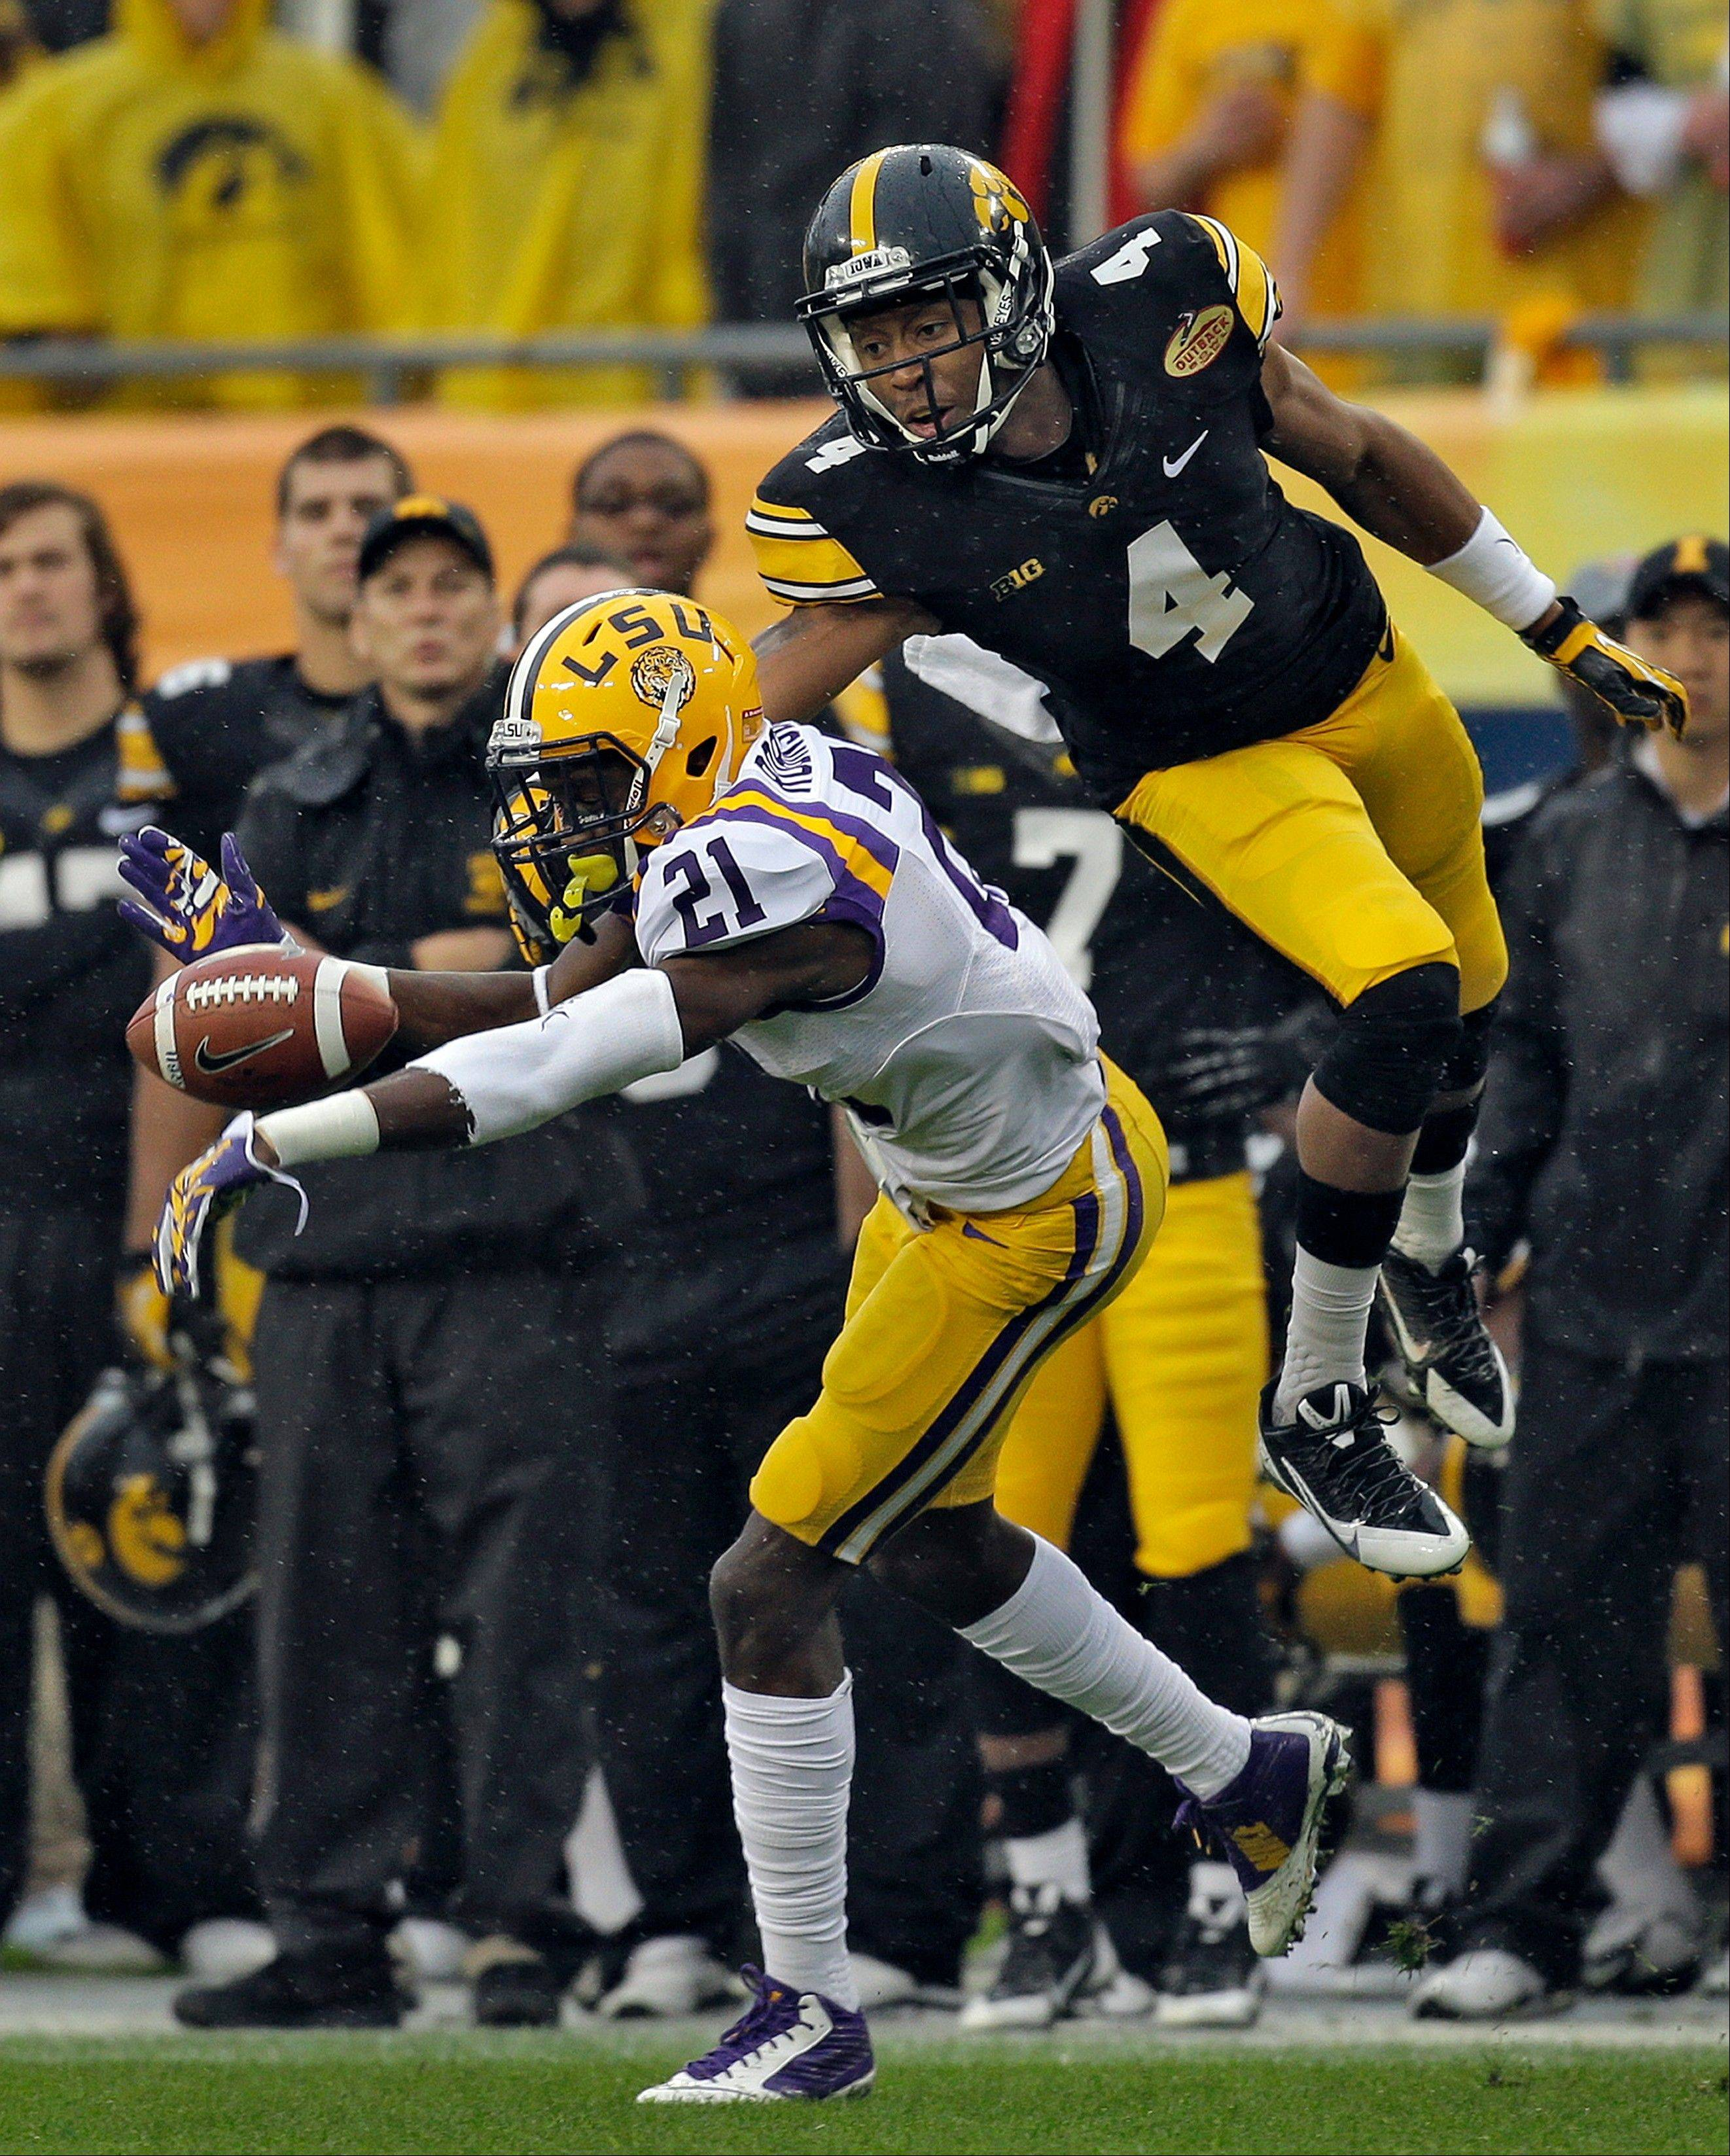 LSU defensive back Rashard Robinson (21) knocks a pass away from Iowa wide receiver Tevaun Smith (4) during the first quarter of the Outback Bowl NCAA college football game Wednesday, Jan. 1, 2014, in Tampa, Fla.